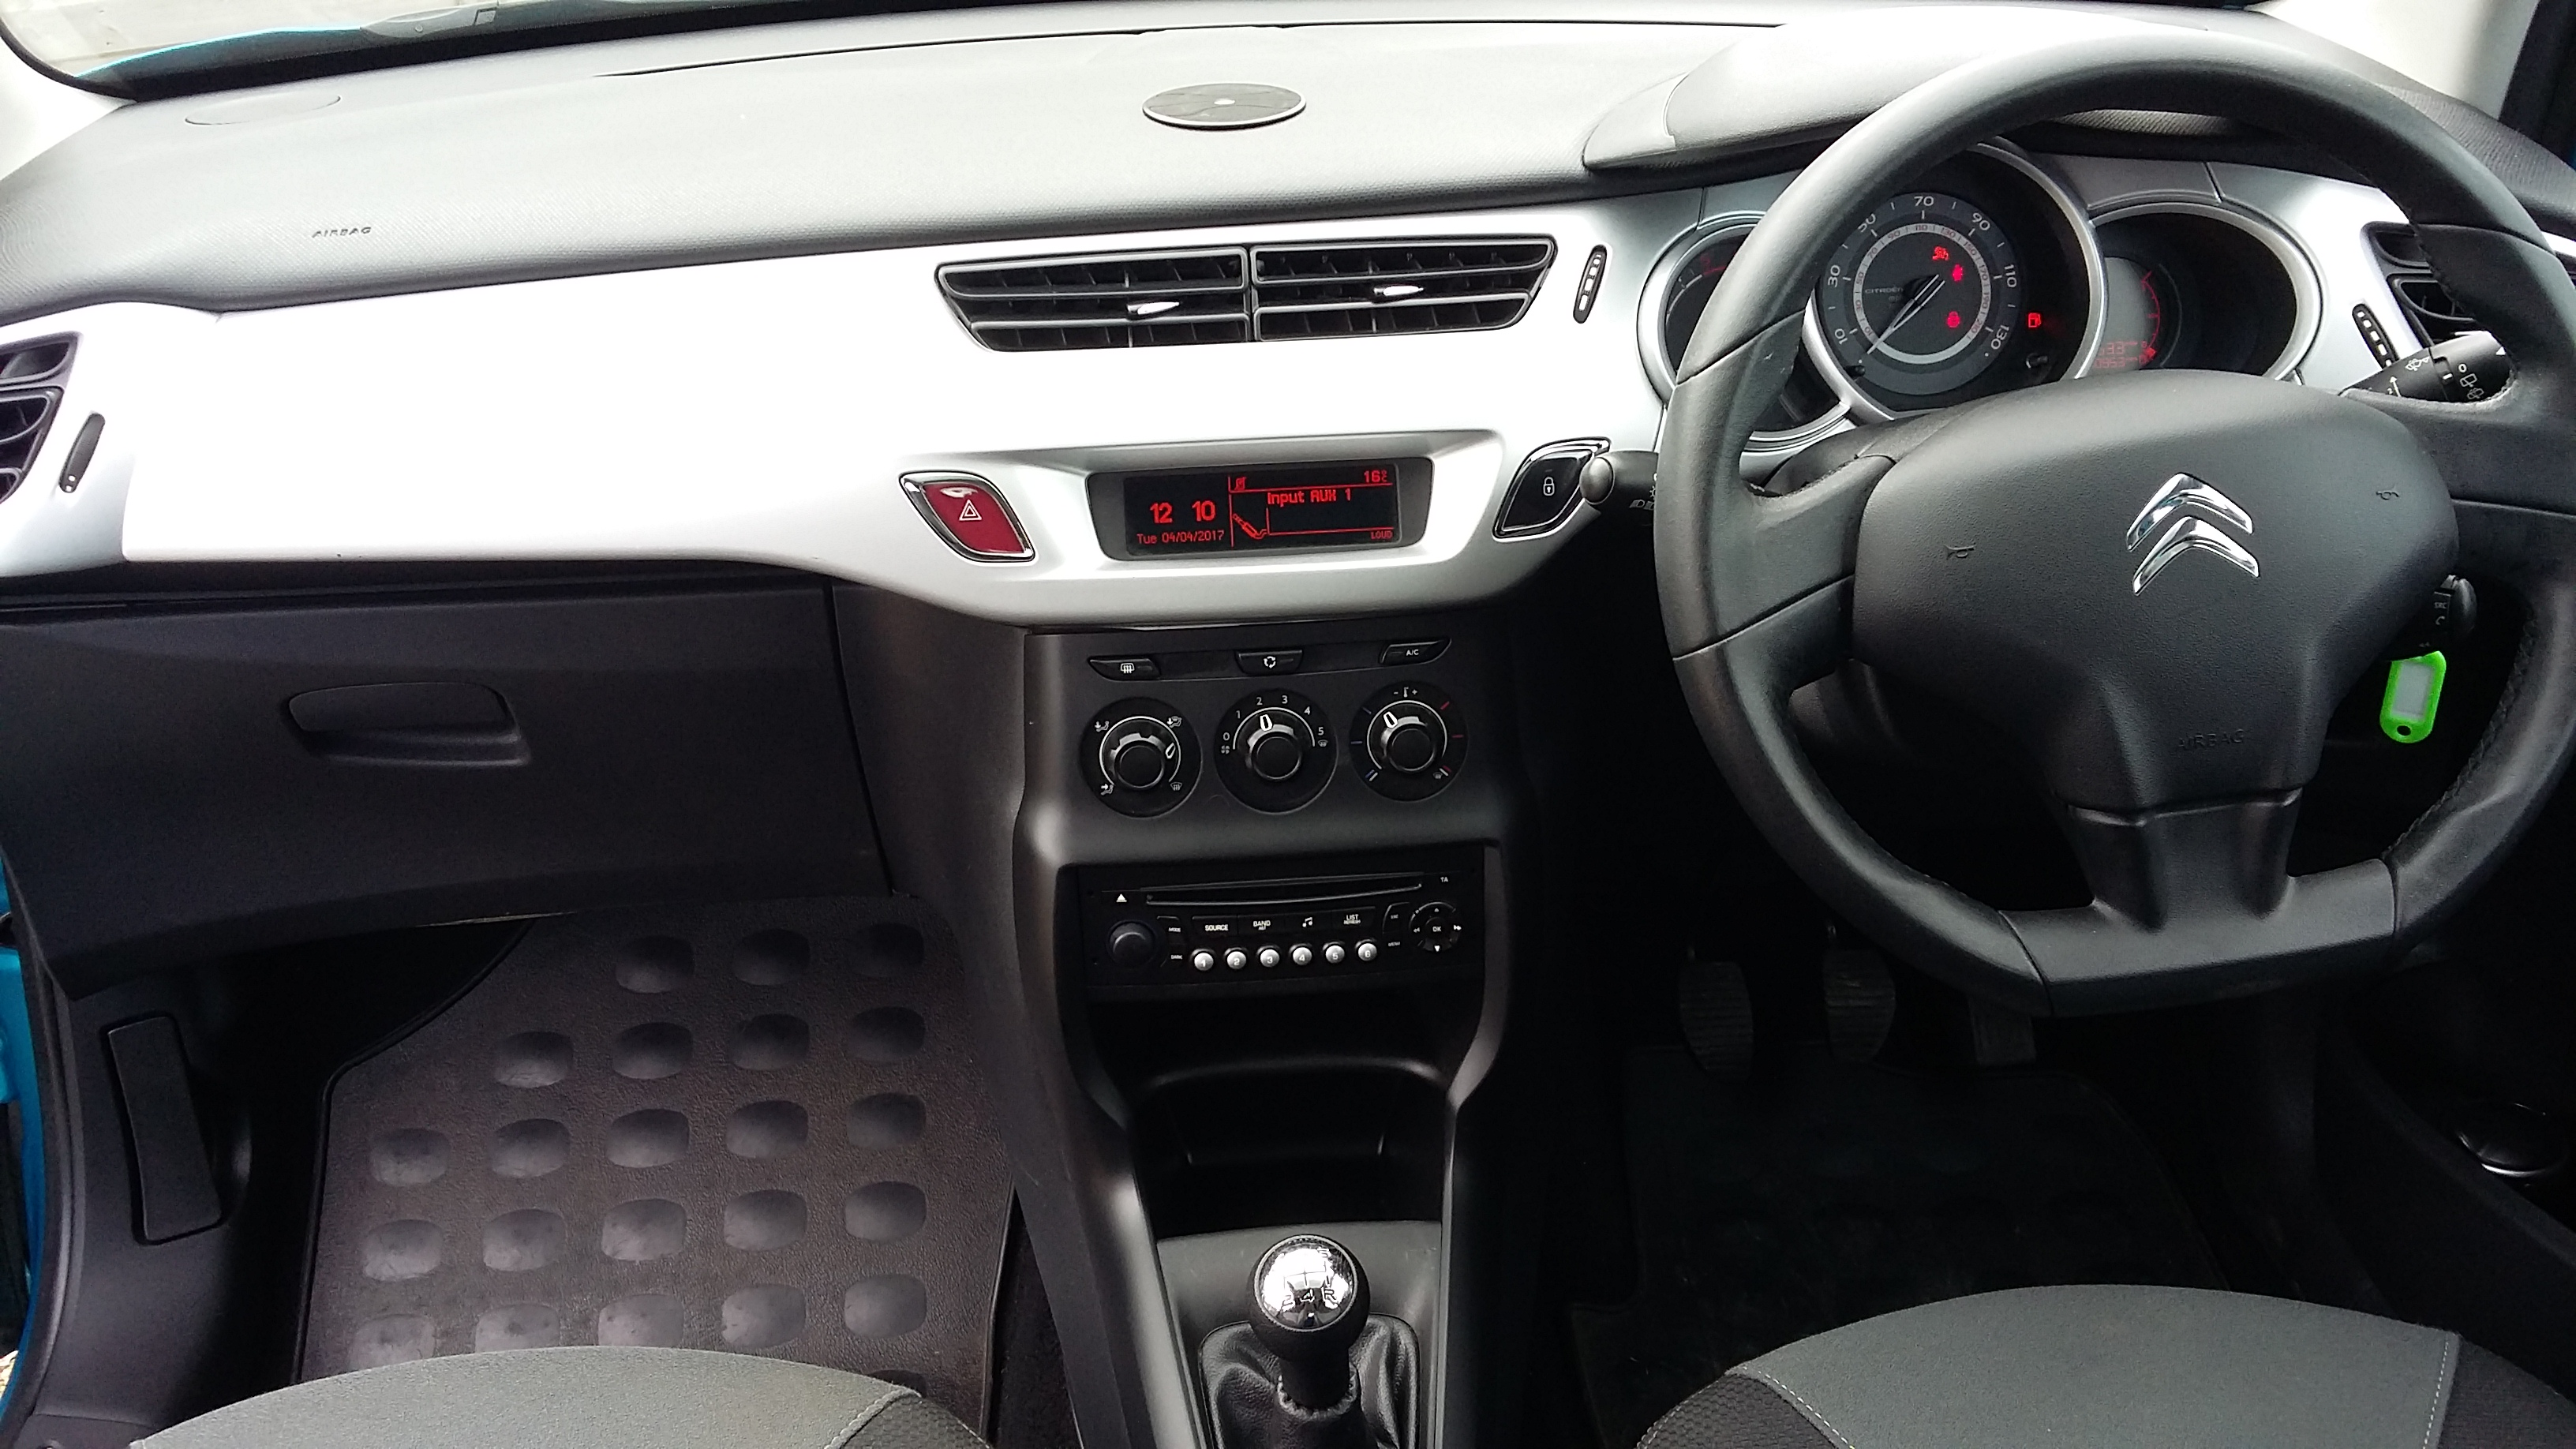 citroen c3 for sale by woodlands cars – used cars for sale and pre owned car sales 17